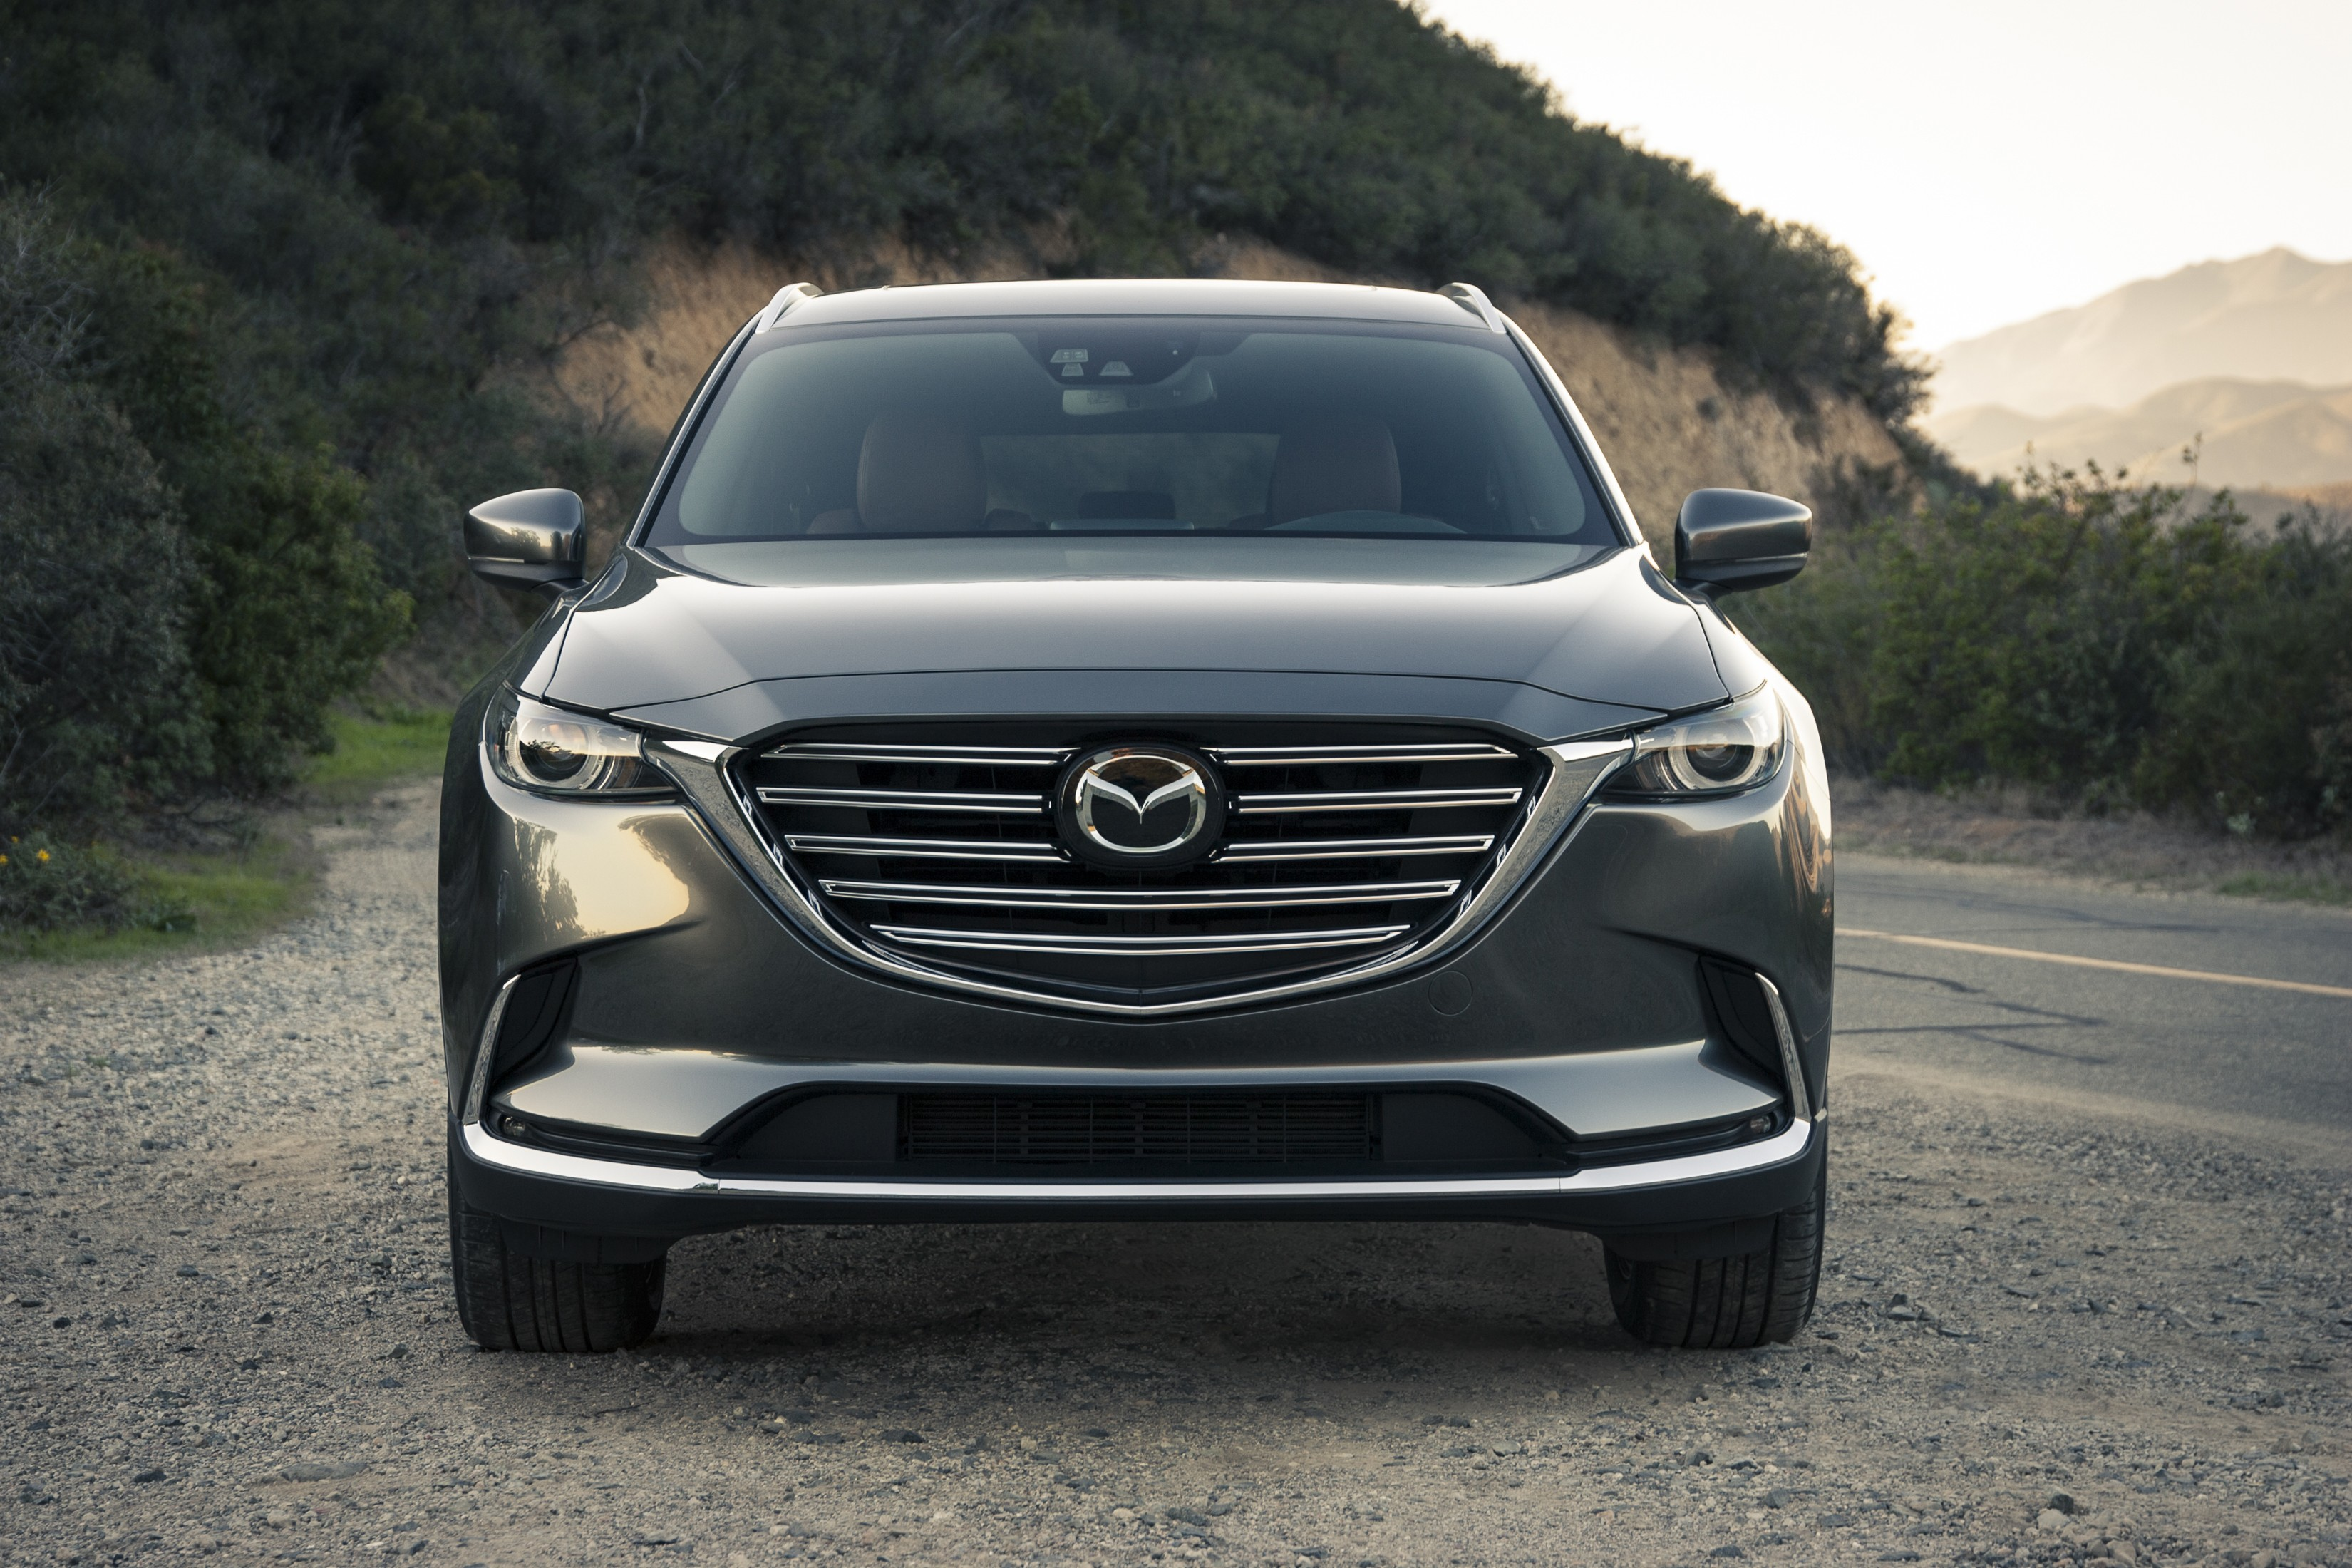 2016 mazda cx-9 priced at $31,520, it's $1,535 more than the